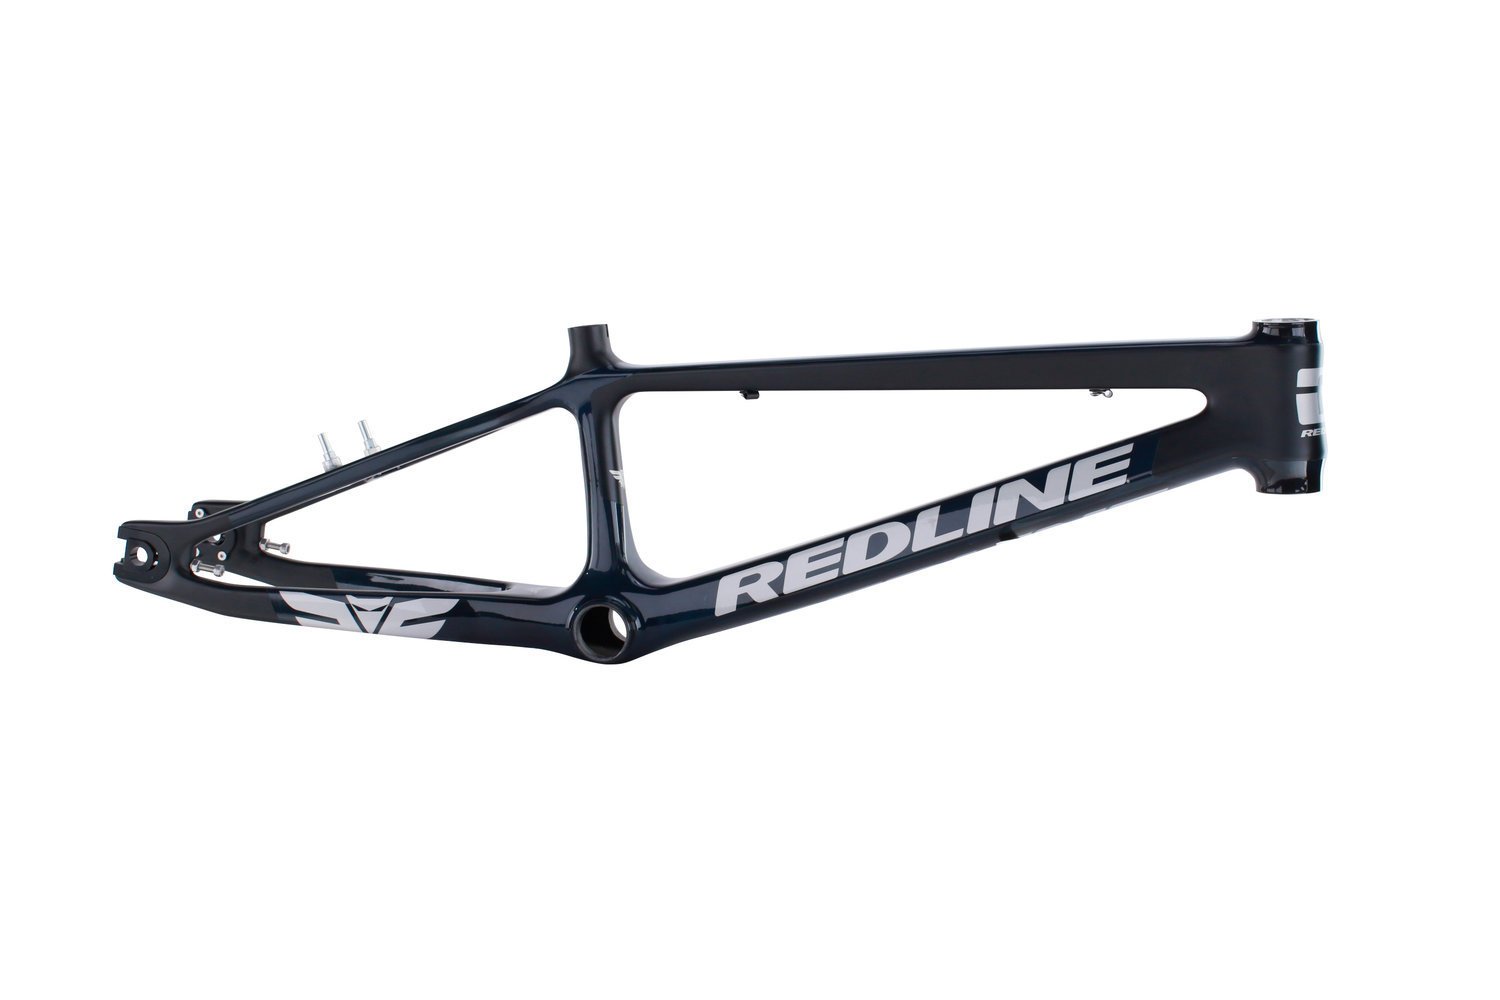 Redline Flight Carbon Frame All Star Bike Shops Inc